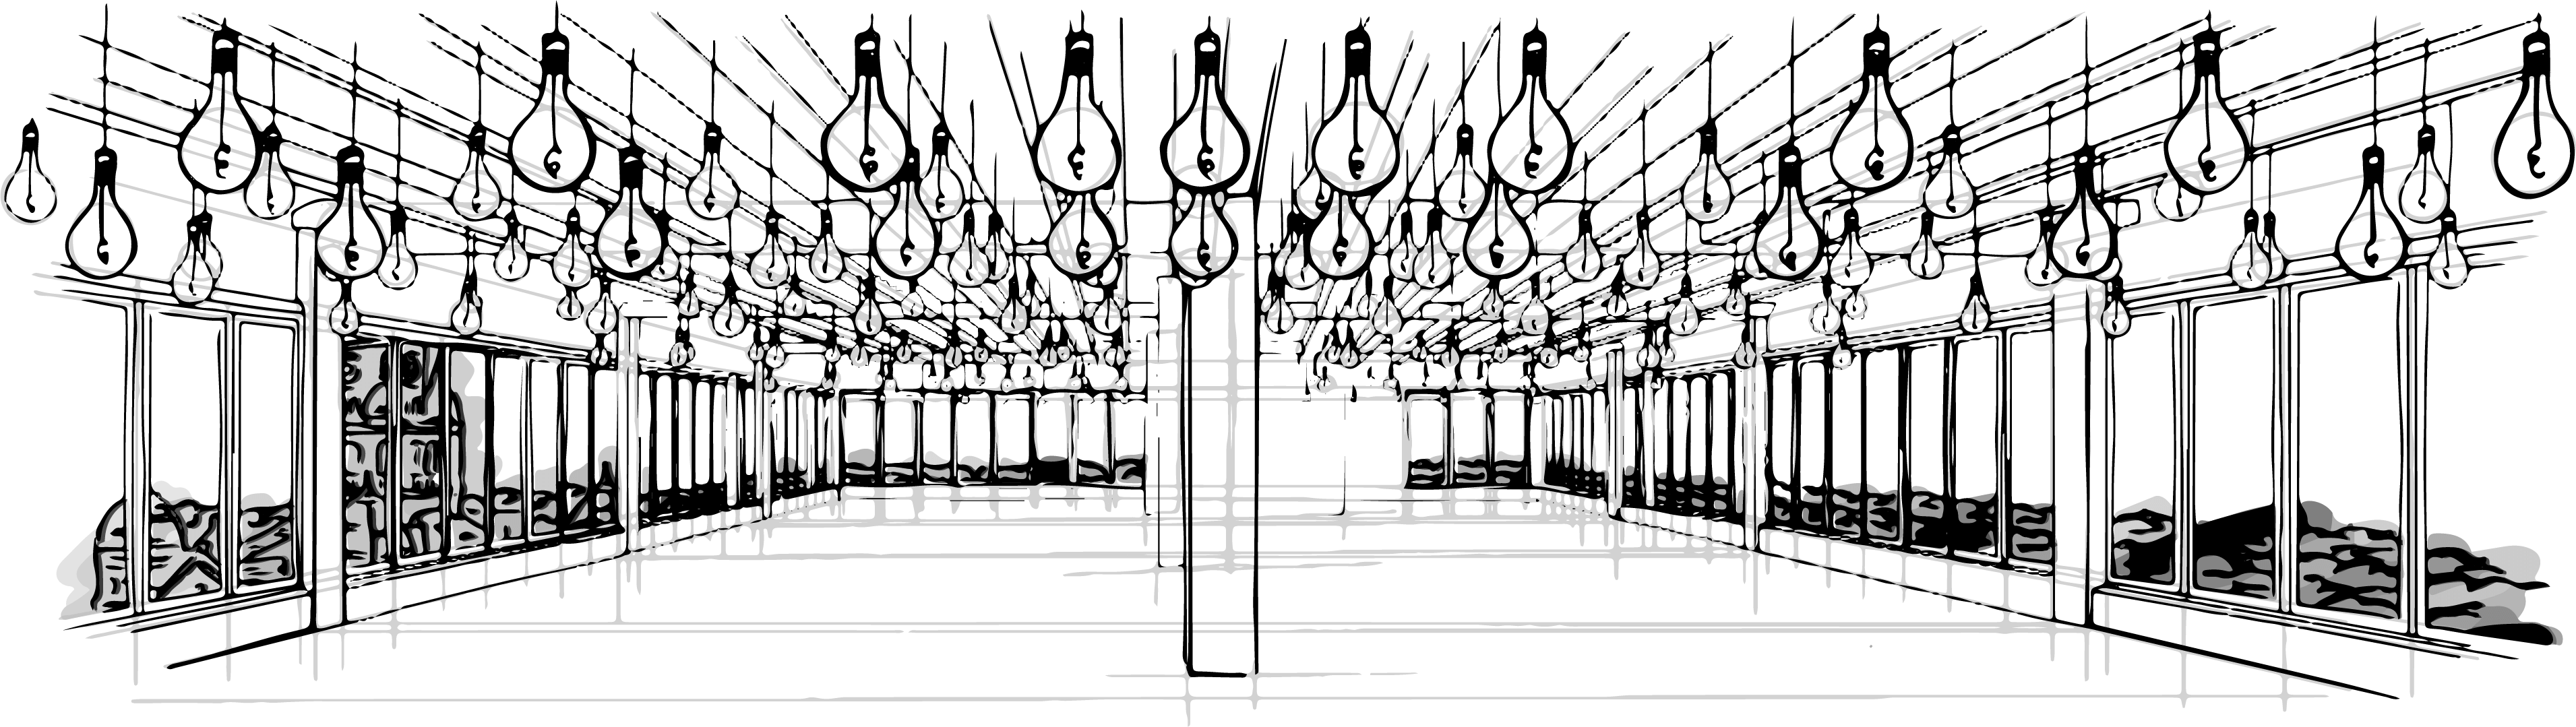 hand drawn illustration of the vast Sunago Bell wedding and events space